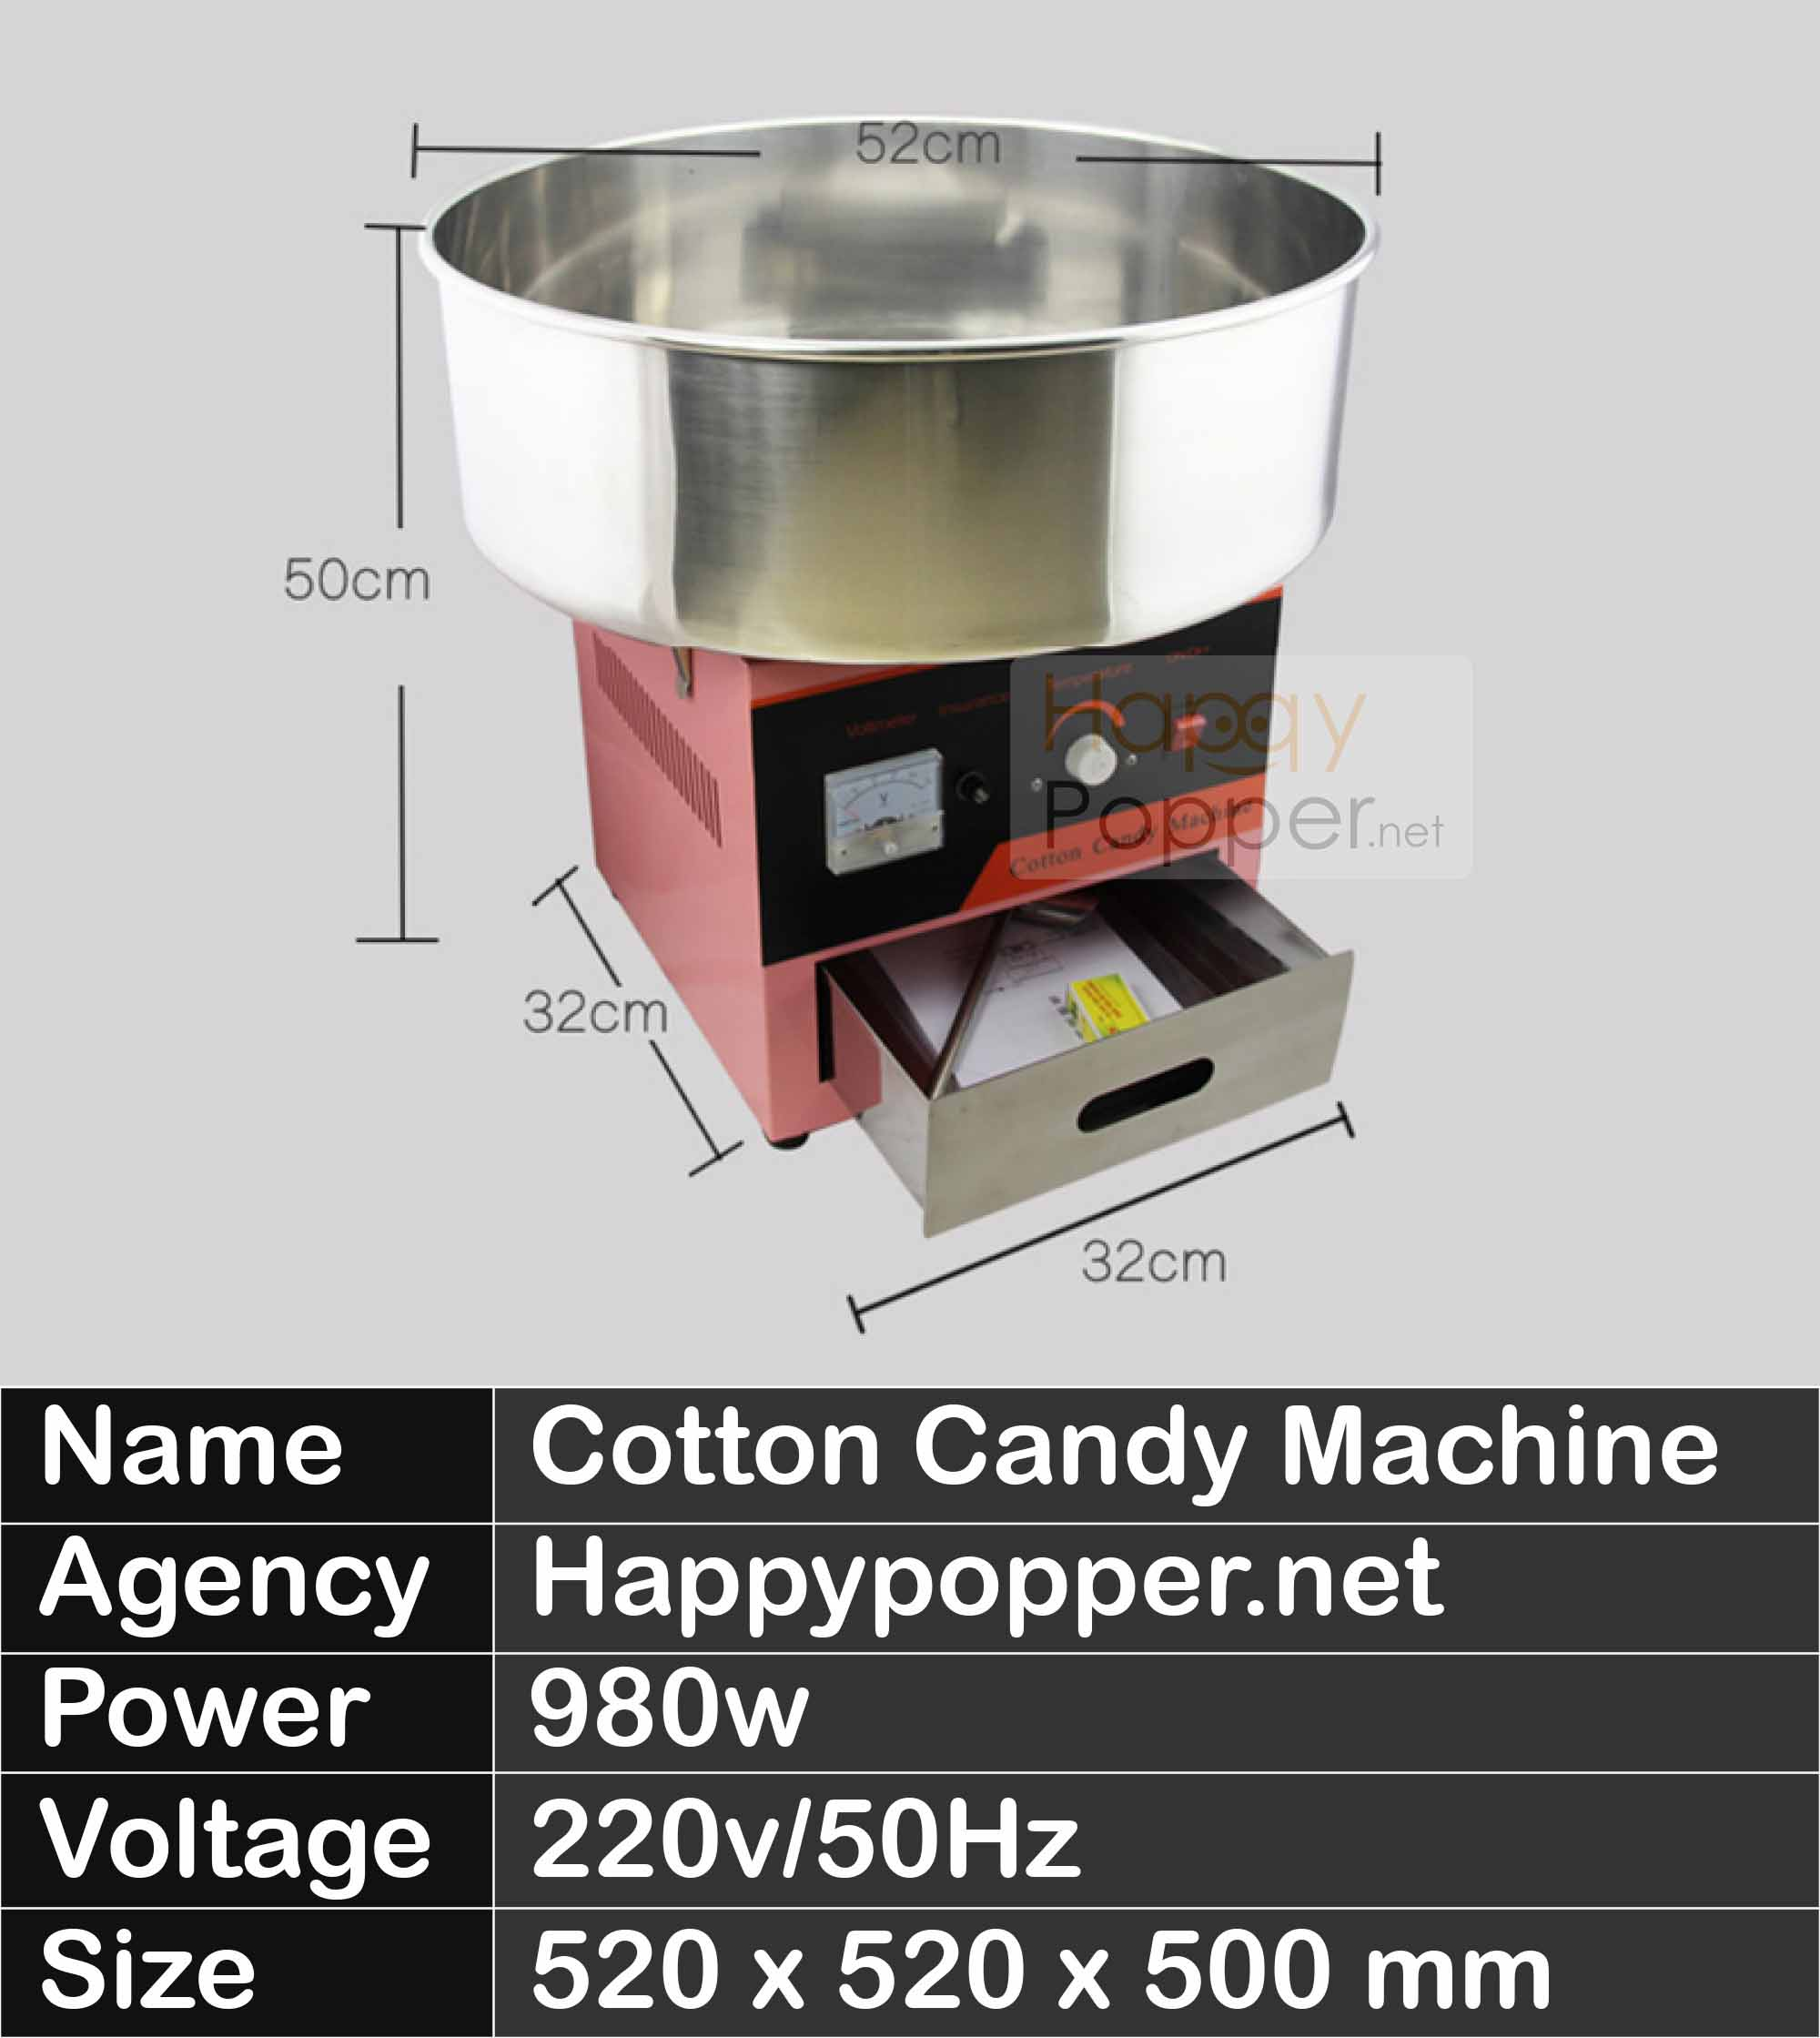 HAPPYPOPPER-COTTON CANDY MAKER